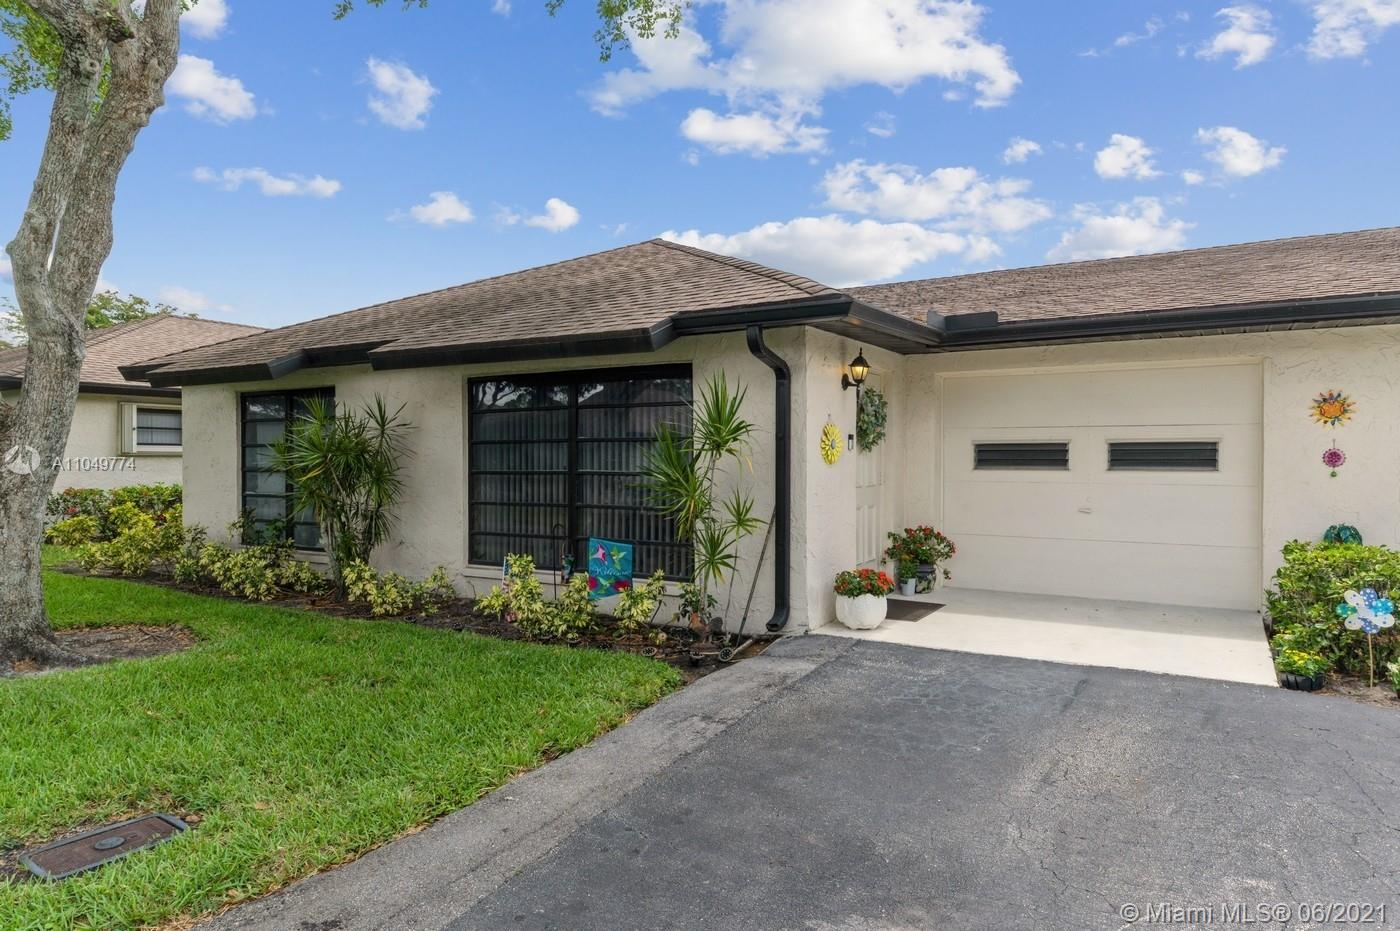 Beautifully remodeled 2 bed/2 bath/ 1 car garage home in Greentree Villas, an active 55+ community i